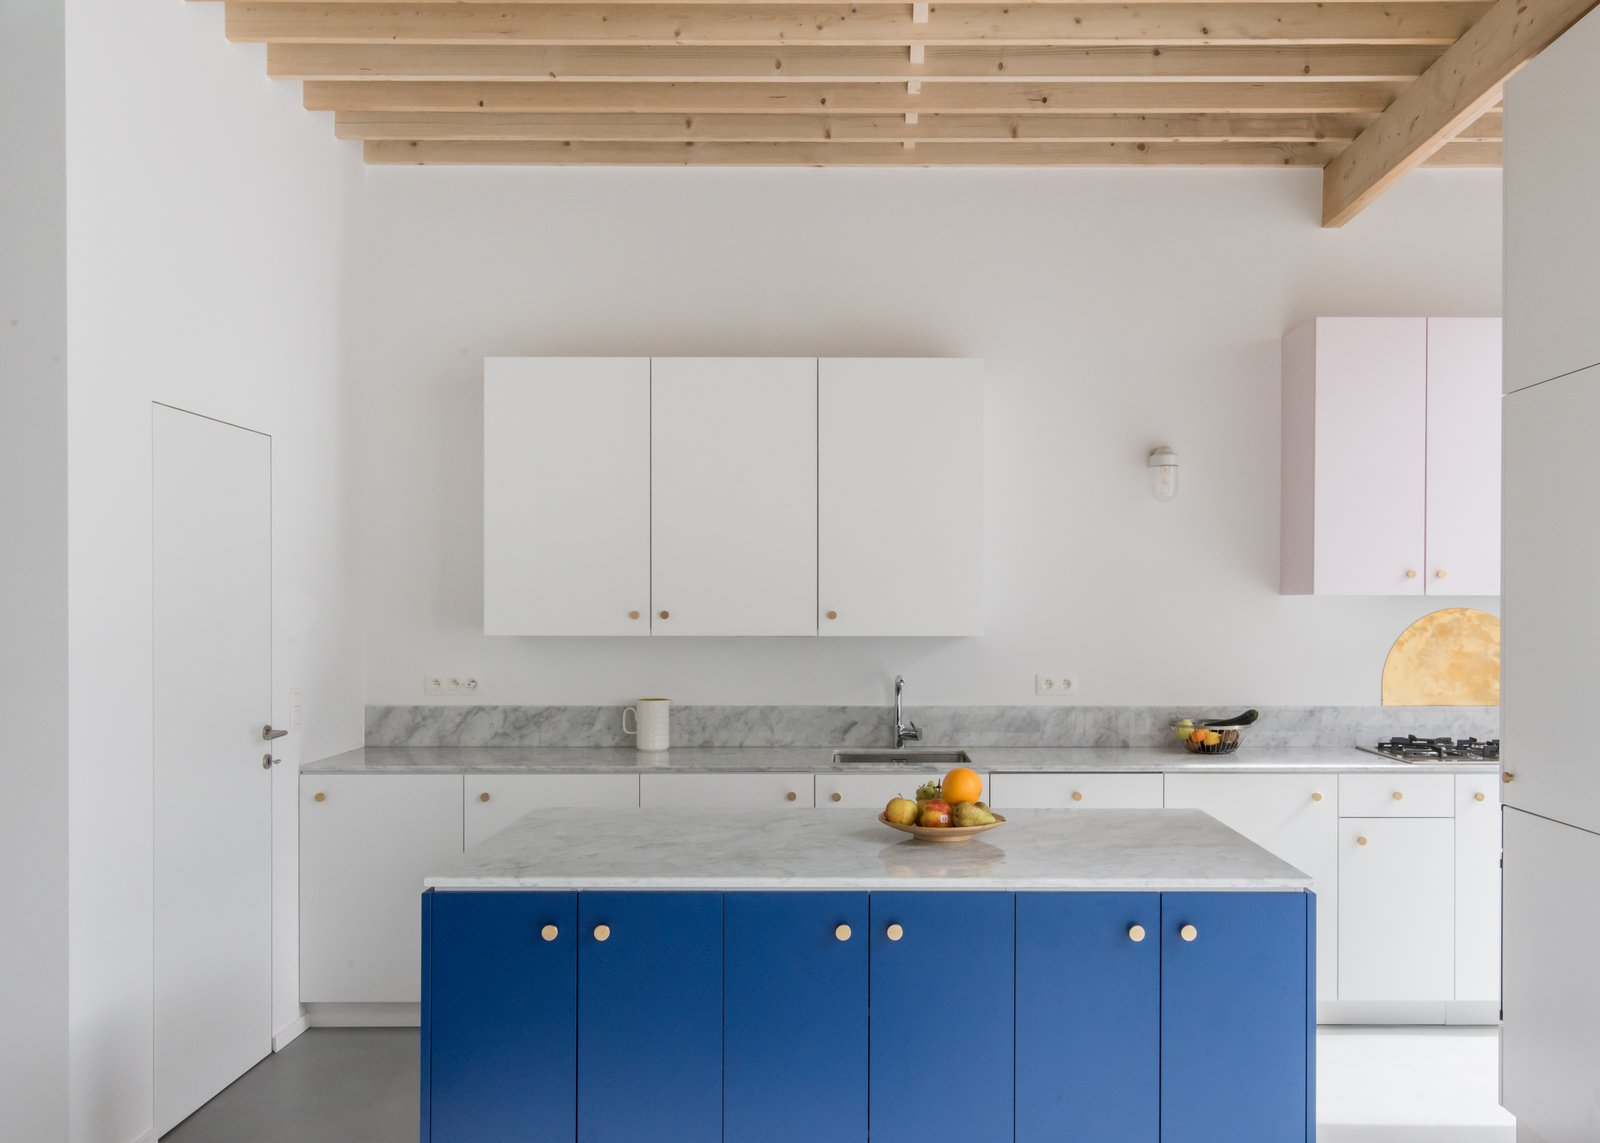 Kitchen, Undermount, White, Colorful, Cooktops, Wall, and Concrete The kitchen's white palette allows the bright blue cabinets and gold hardware to stand out.    Best Kitchen Concrete White Cooktops Wall Photos from A Mint-Green Staircase Adds Radiant Color to This Restored Townhouse